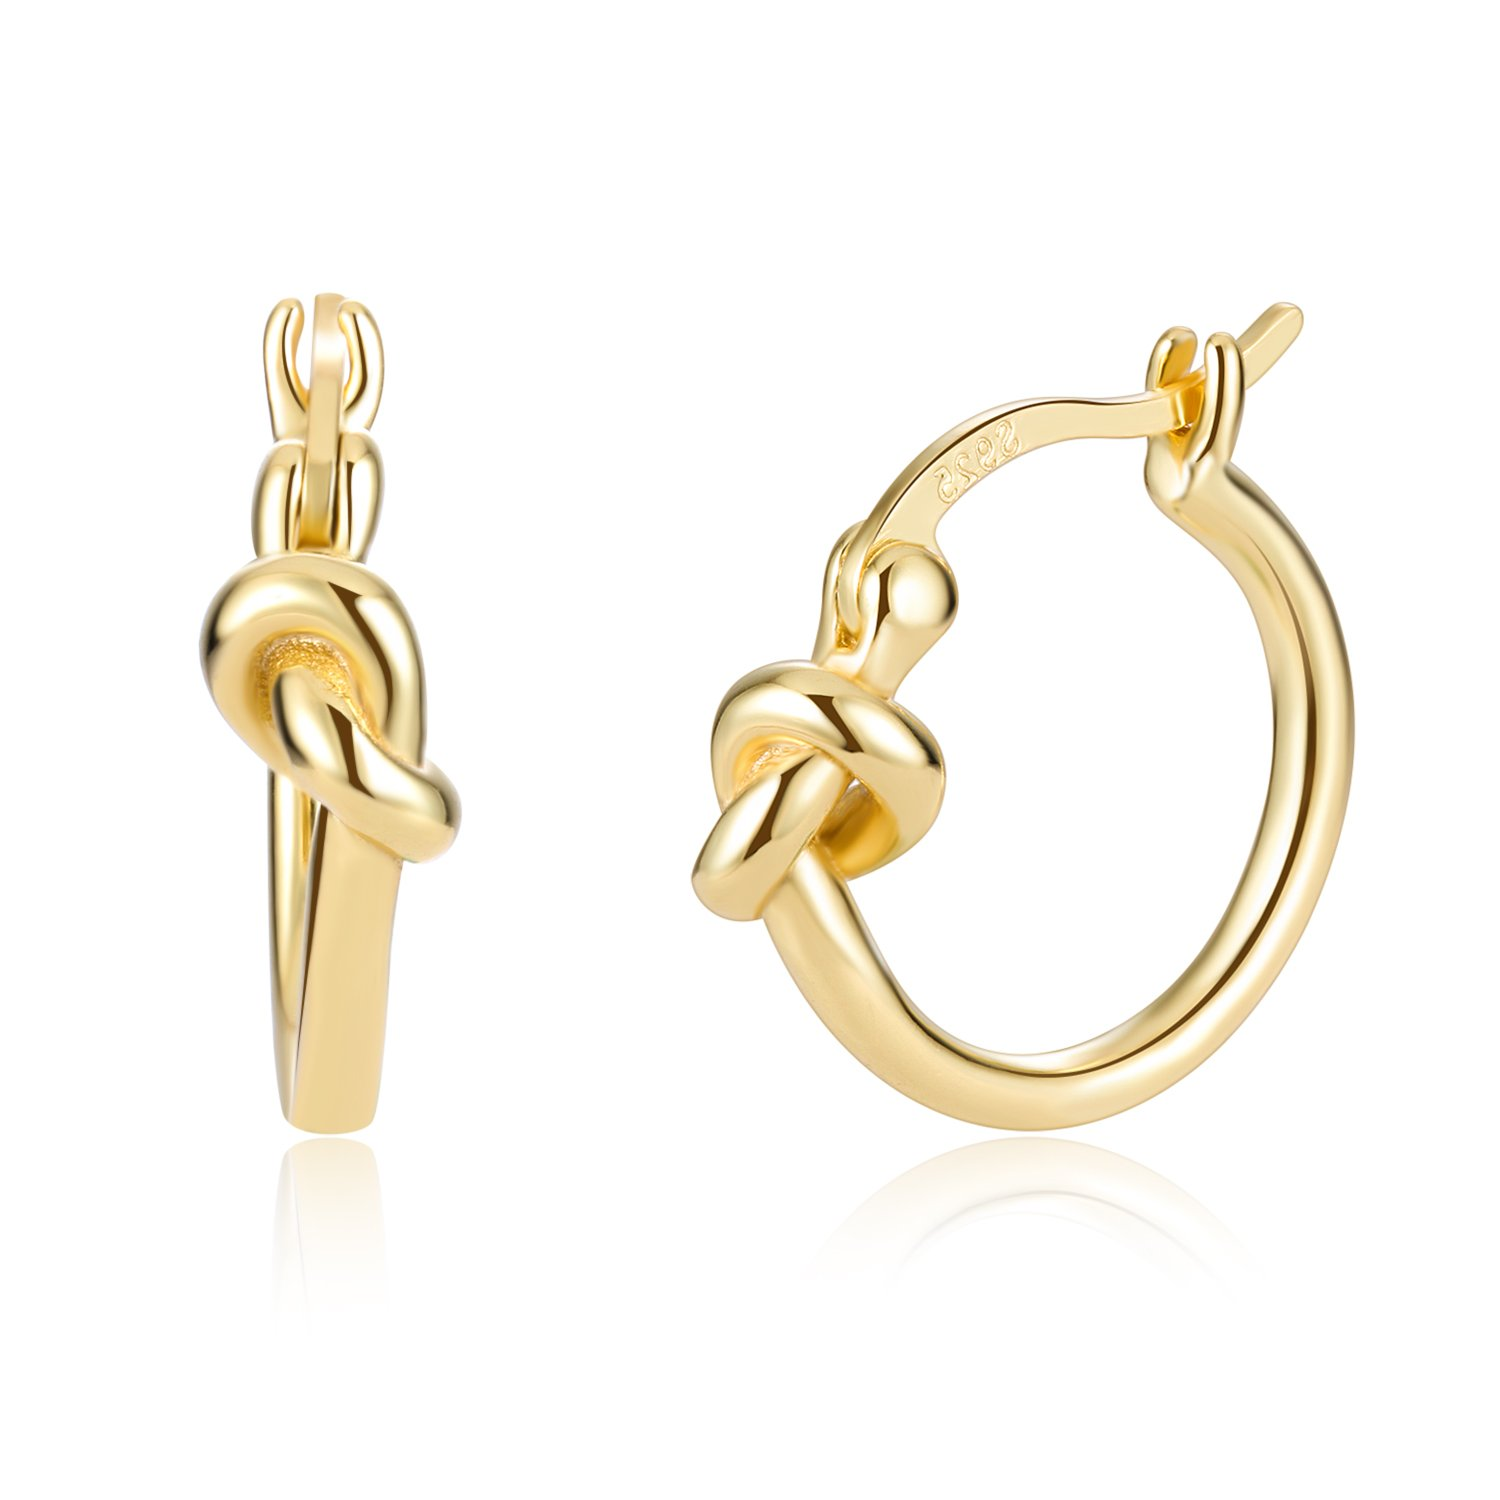 Love Knot Celtic 18K Gold Plated 925 Sterling Silver Minimalist Clip On Earrings